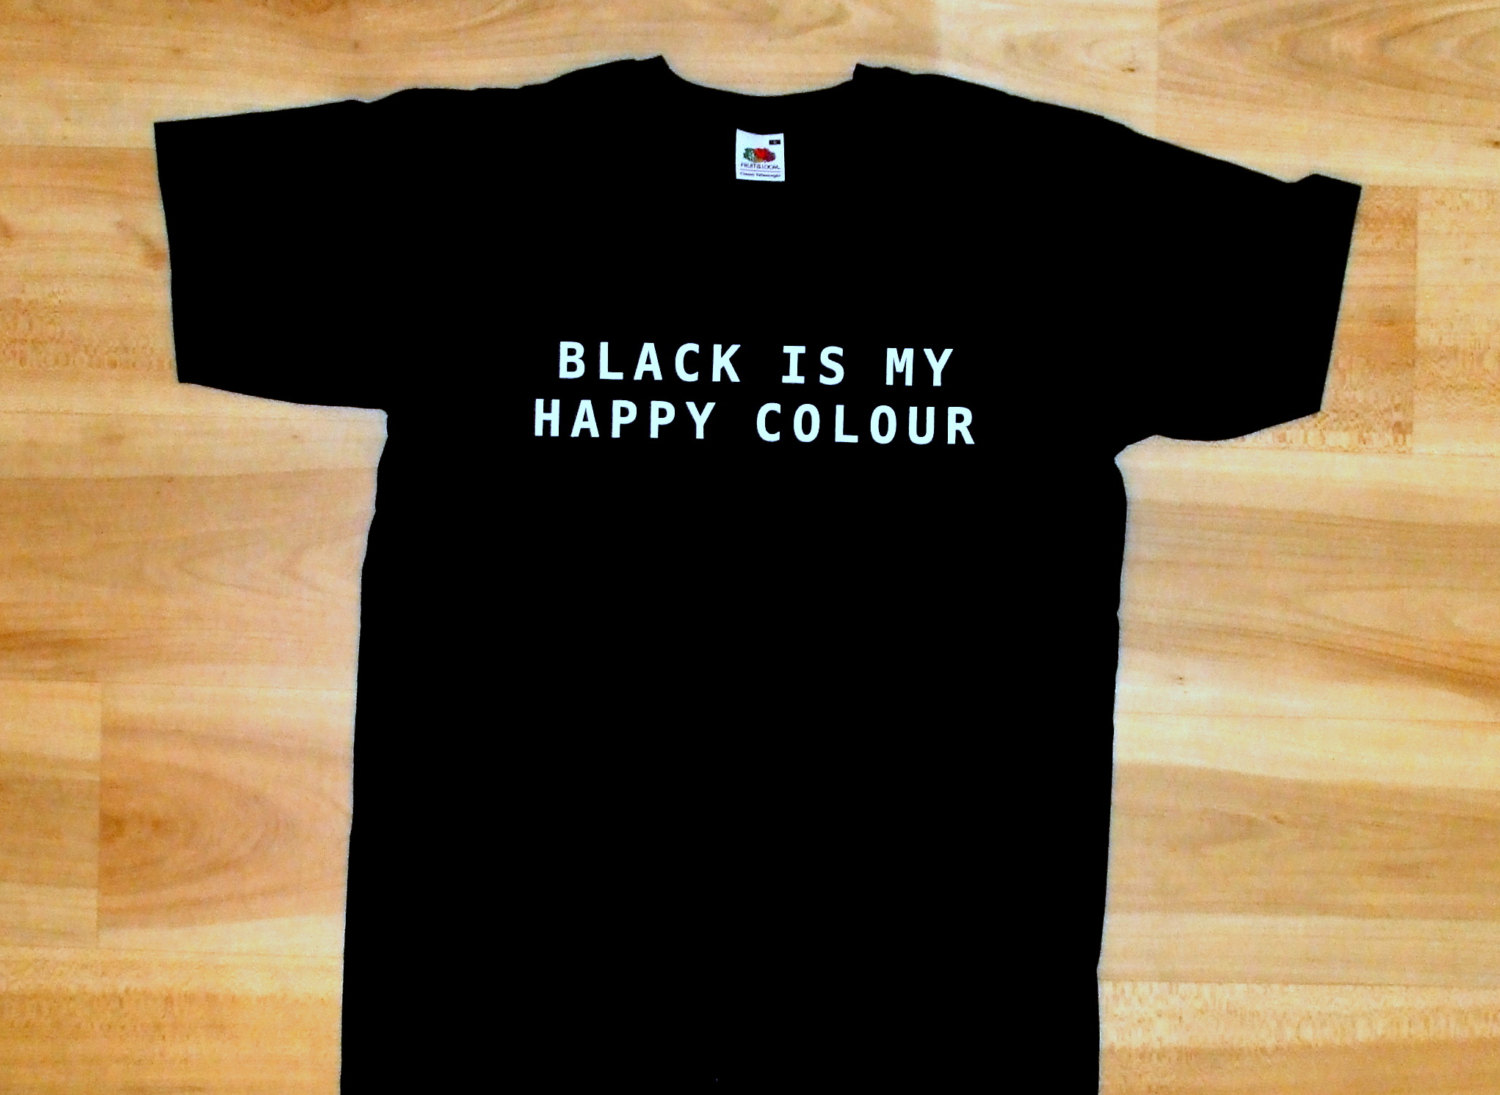 T shirt black is my happy color - Black Is My Happy Colour Shirt Tumblr Black T Shirt Is Happy Colour Black Color Shirt